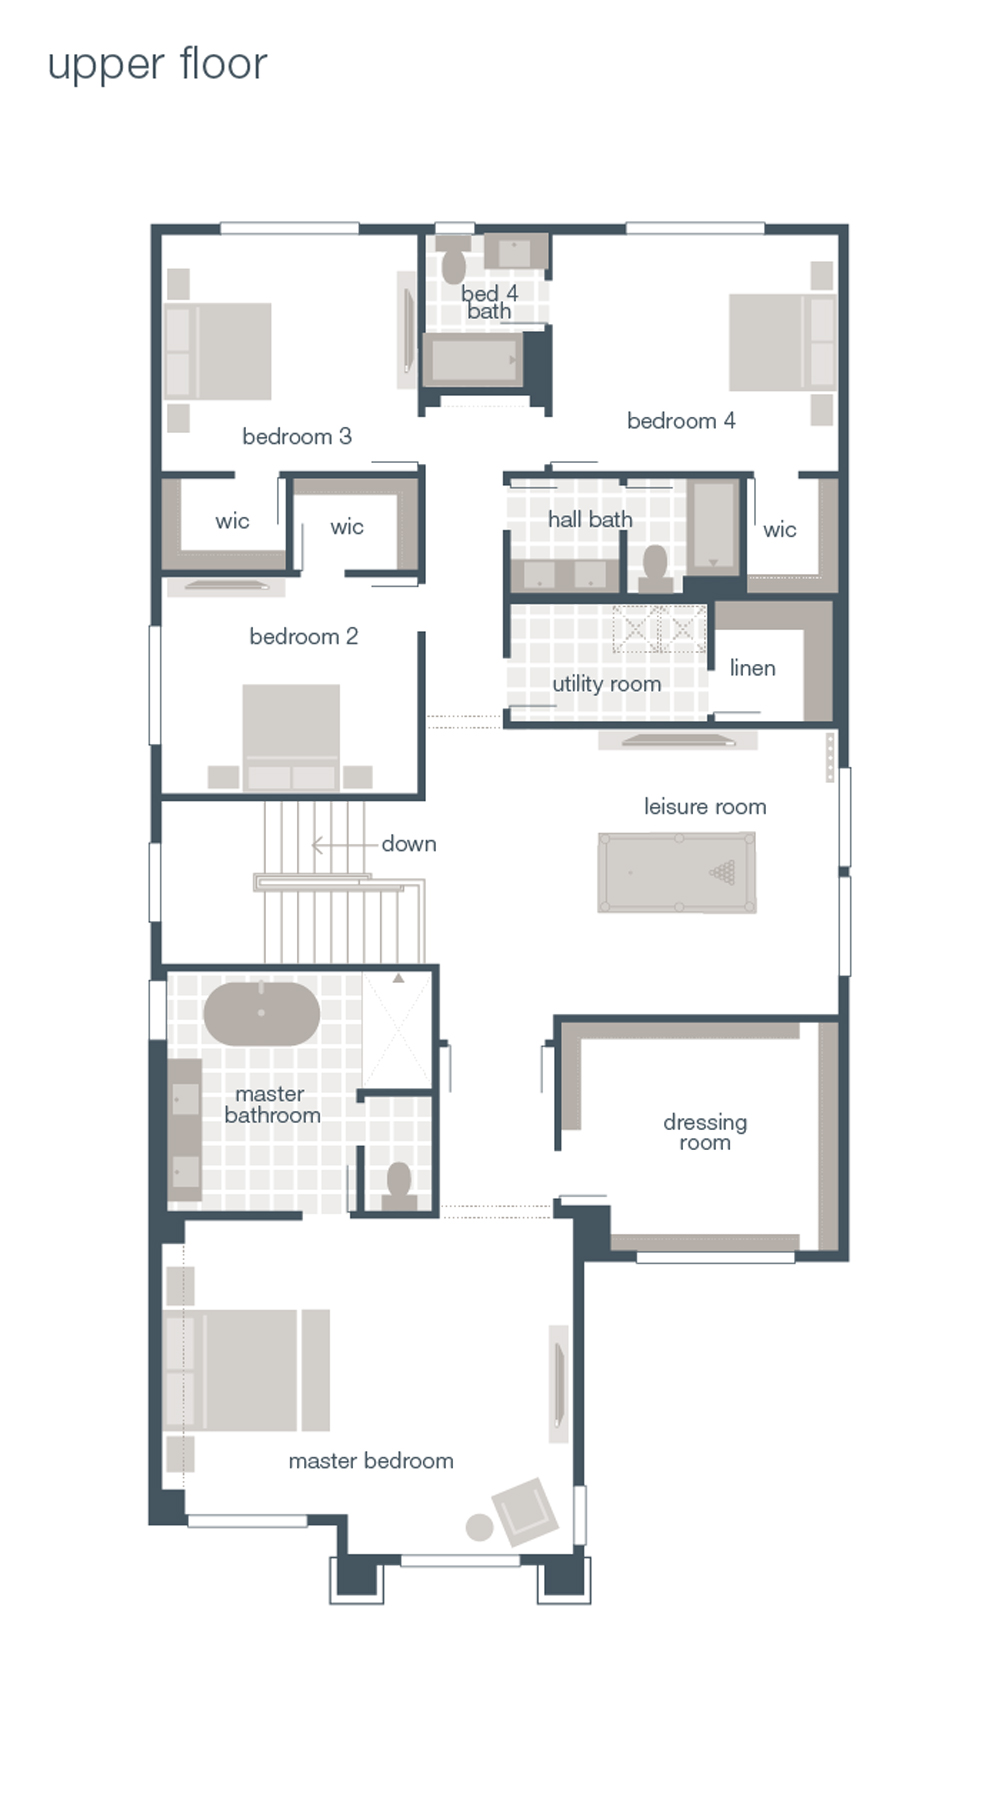 MainVue Homes Astoria Upper Floorplan